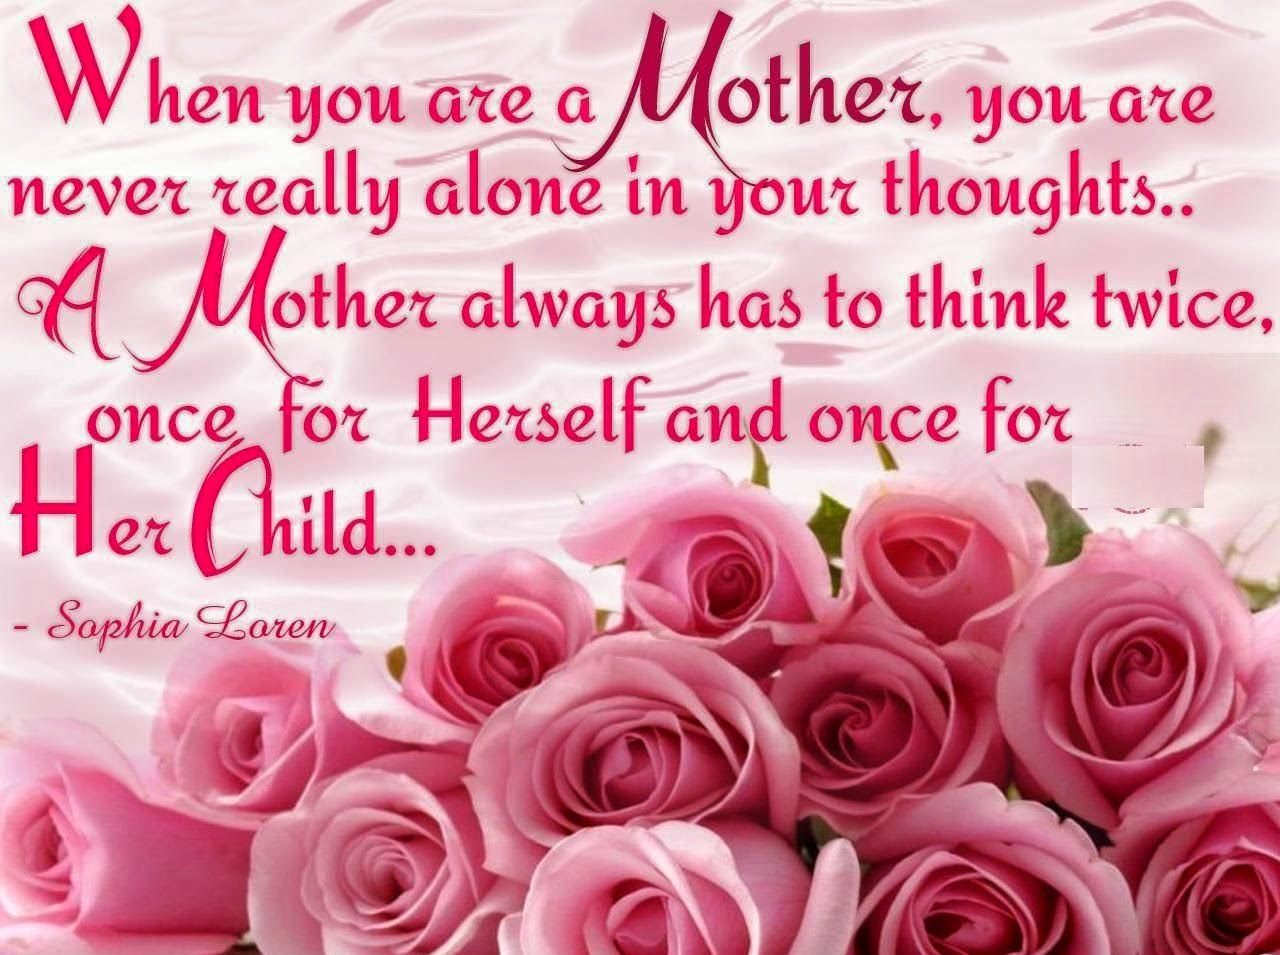 happy mothers day images 2019 pictures photos hd wallpapers mothers day greetings images m4hsunfo